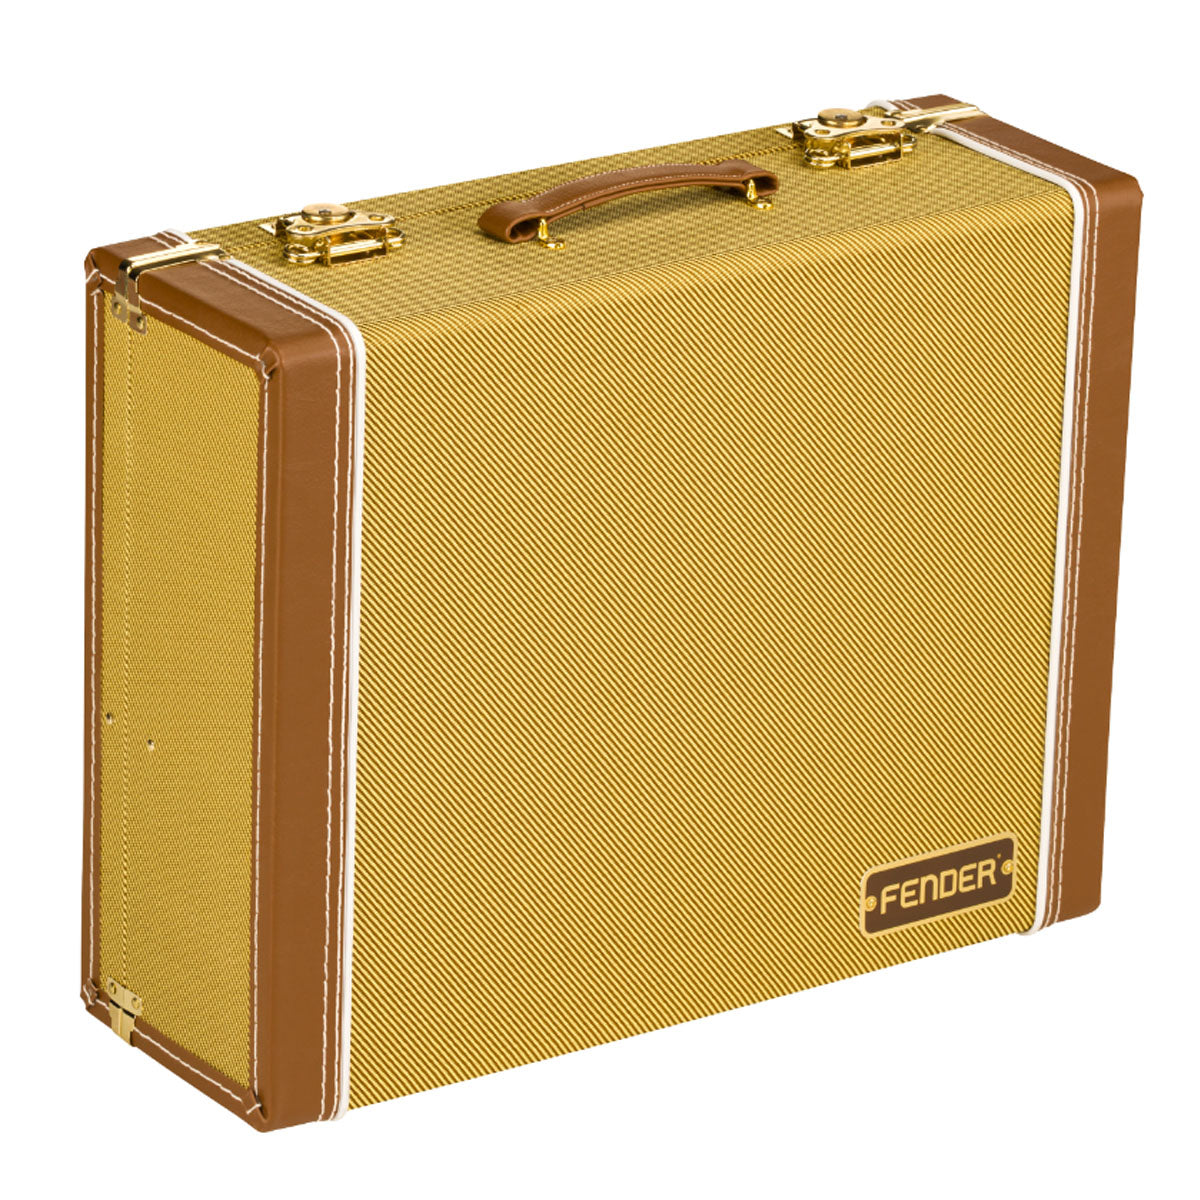 Fender Classic Series Tweed Pedalboard Case Small - 0996106501